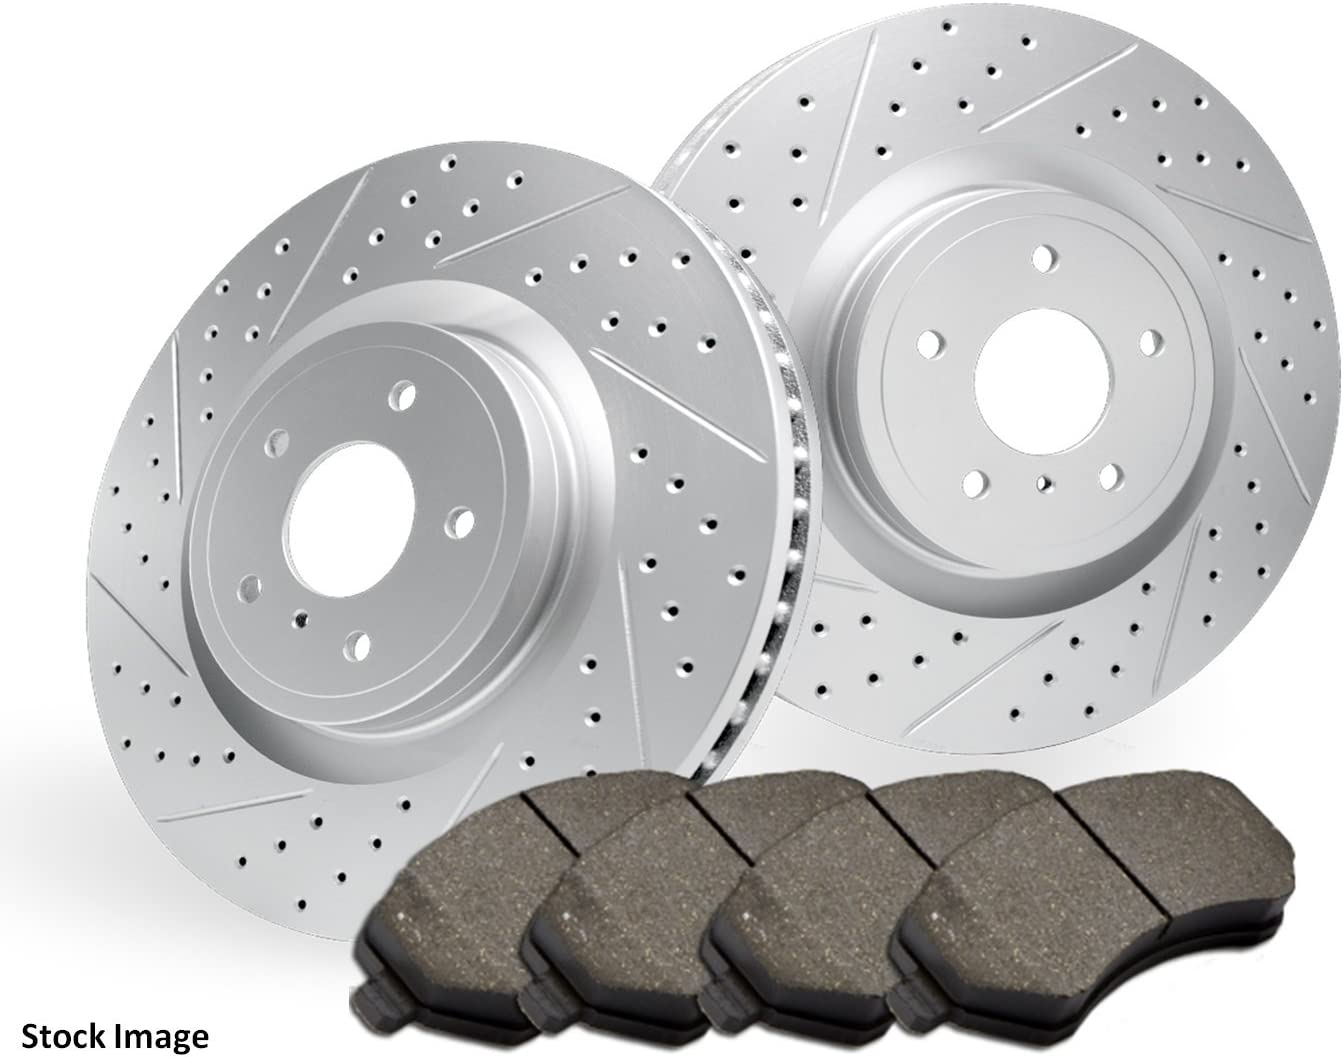 Stirling 2010 For Audi S5 Rear Cross Drilled Slotted and Anti Rust Coated Disc Brake Rotors and Ceramic Brake Pads